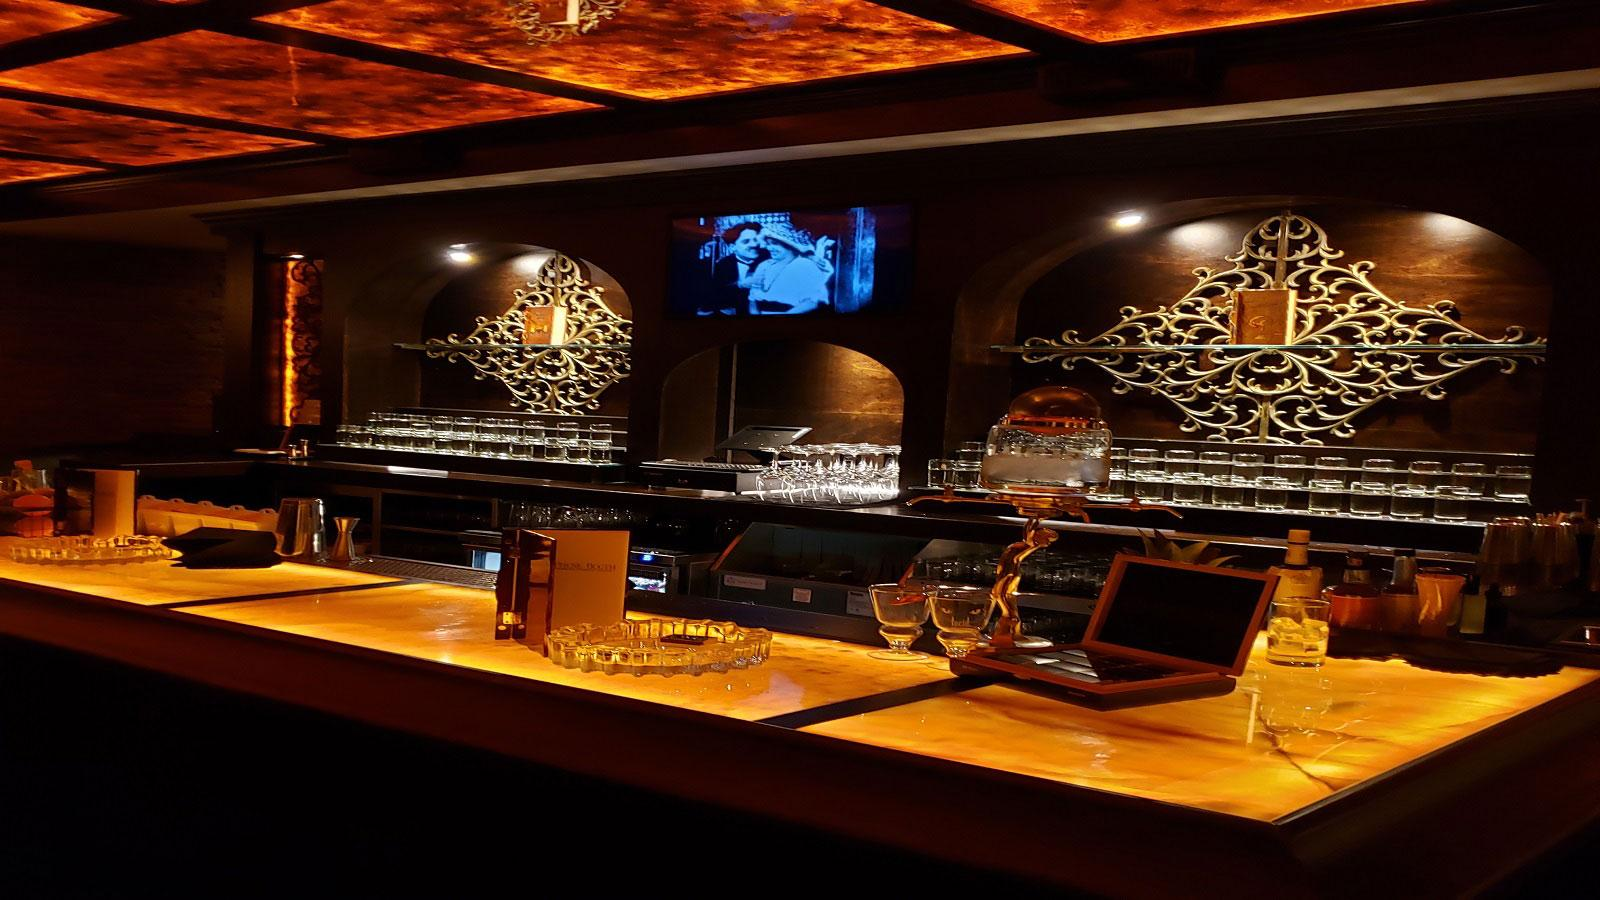 The honey-onyx bar is the focal point of the room, where drink mixing is raised to an art form.